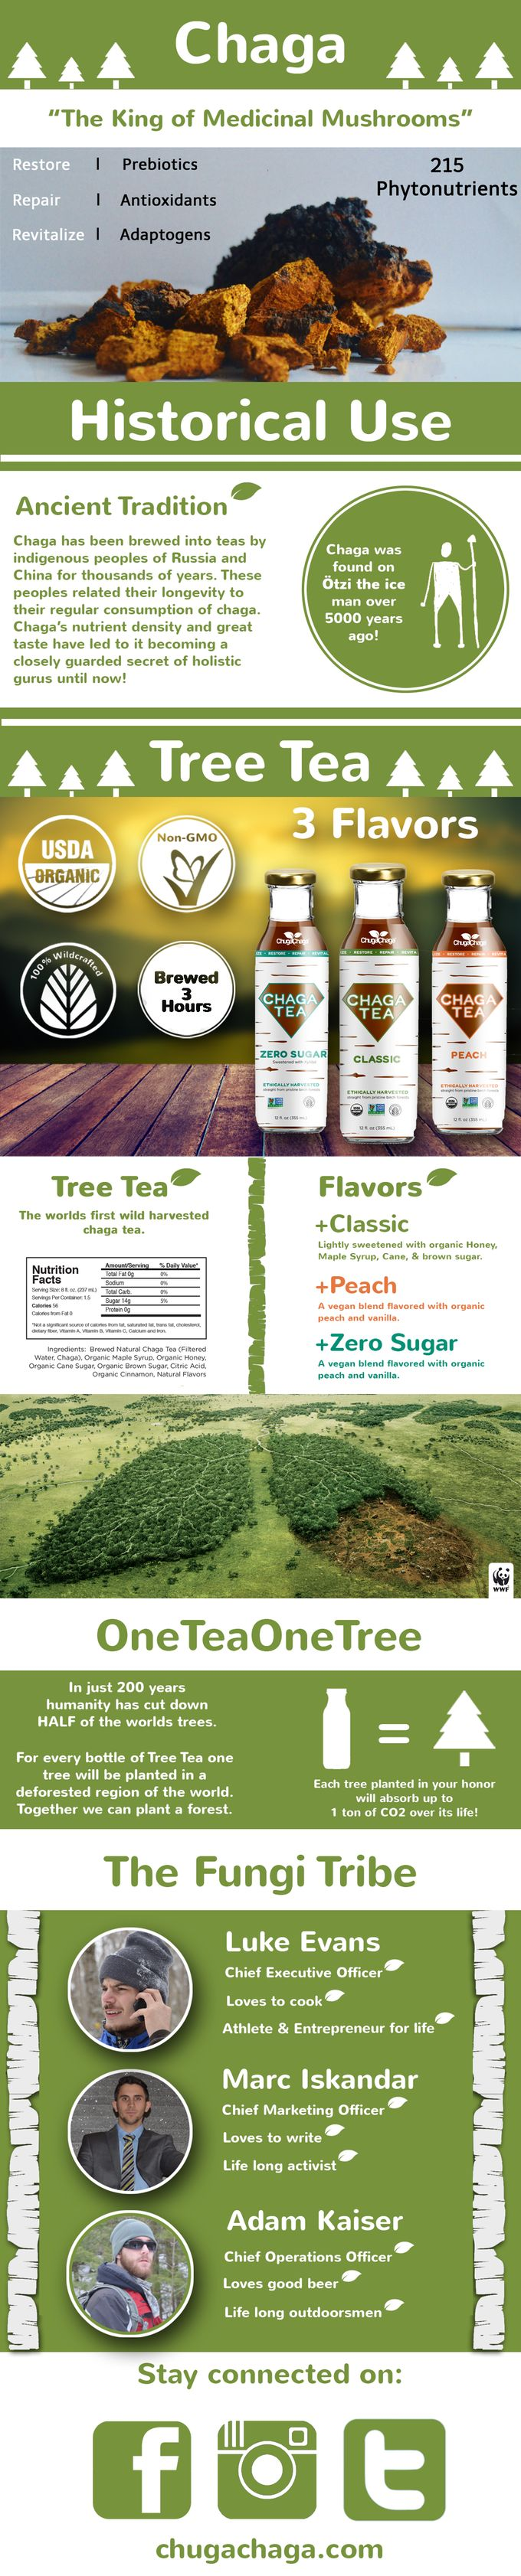 Tree Tea is the first organic and non-GMO certified chaga infused beverage. Brewing the world's best chaga for 3 hours! OneTeaOneTree.